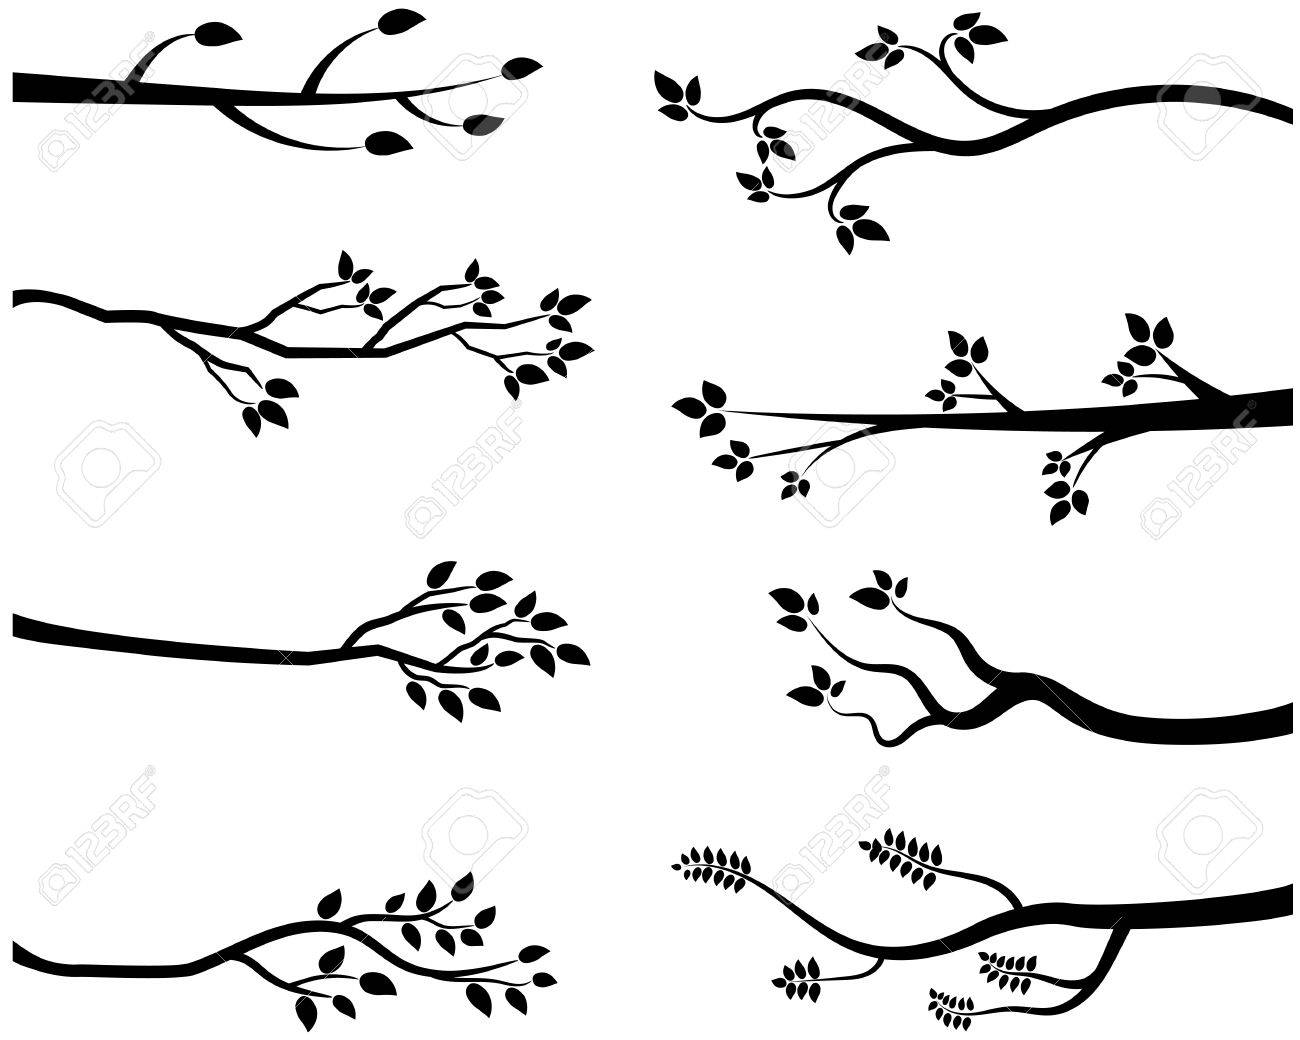 Vector Cartoon Black Tree Branch Silhouettes Royalty Free Cliparts